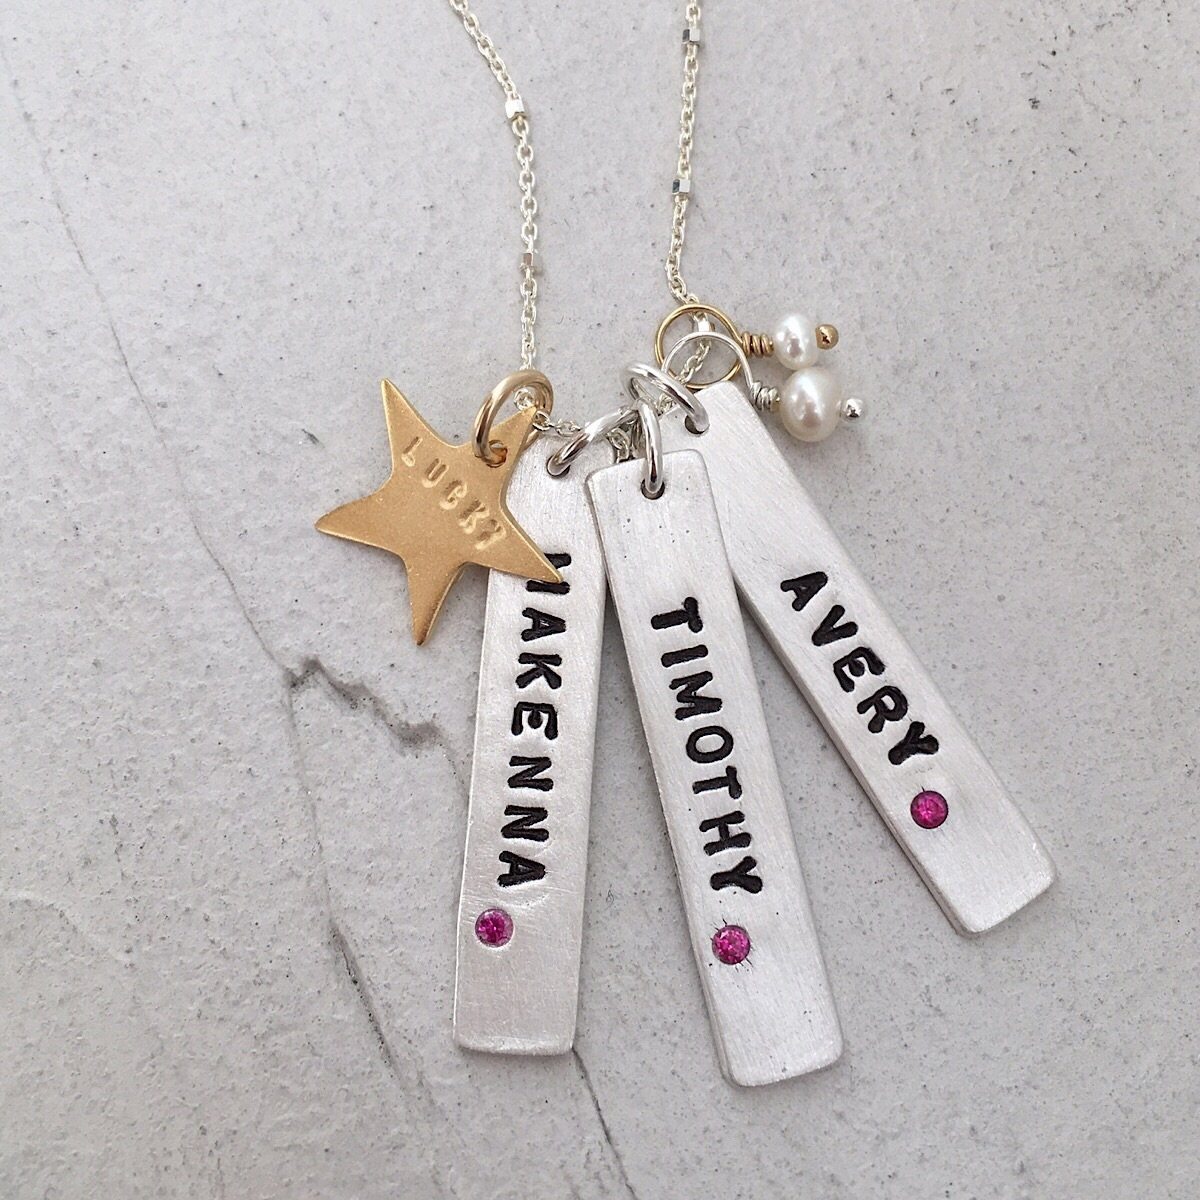 Birthstone Tag Necklace - IsabelleGraceJewelry